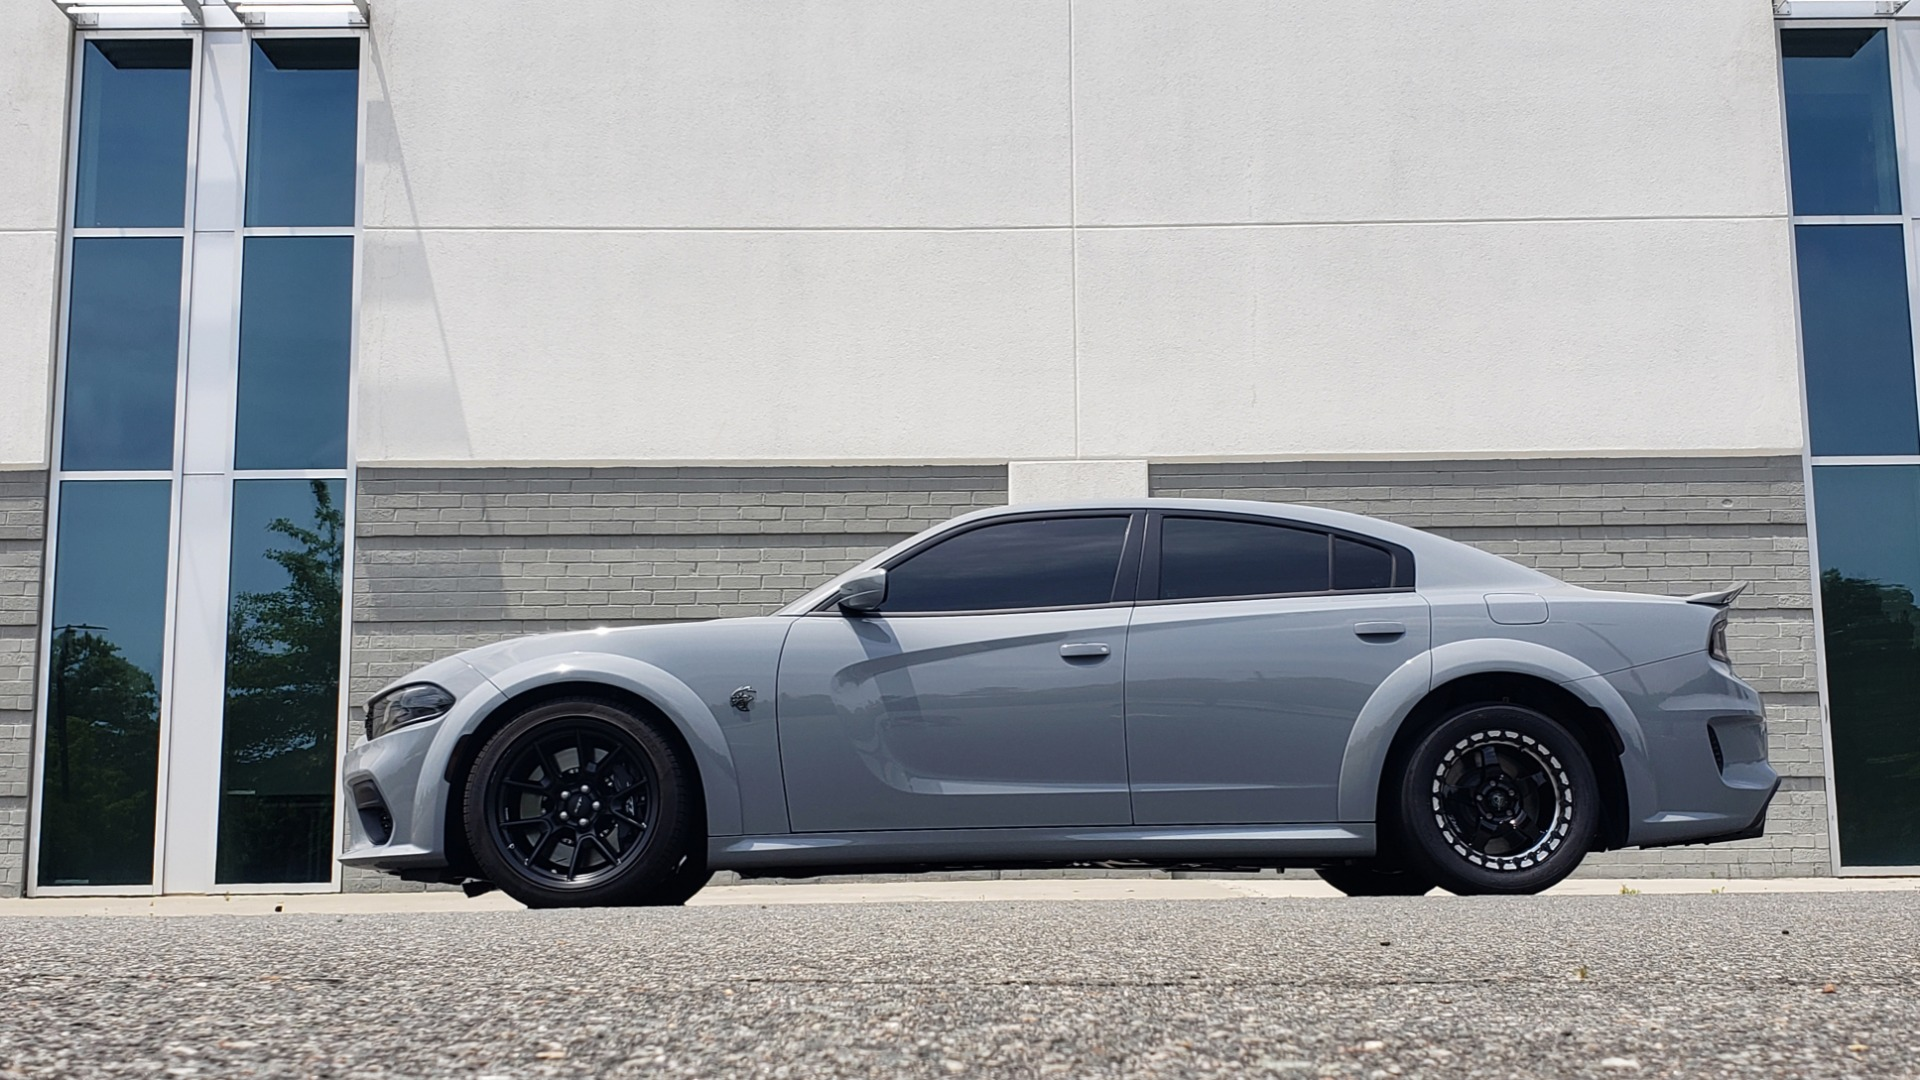 Used 2021 Dodge CHARGER SRT HELLCAT REDEYE WIDEBODY / CUSTOM TUNED 1100BHP for sale Sold at Formula Imports in Charlotte NC 28227 4